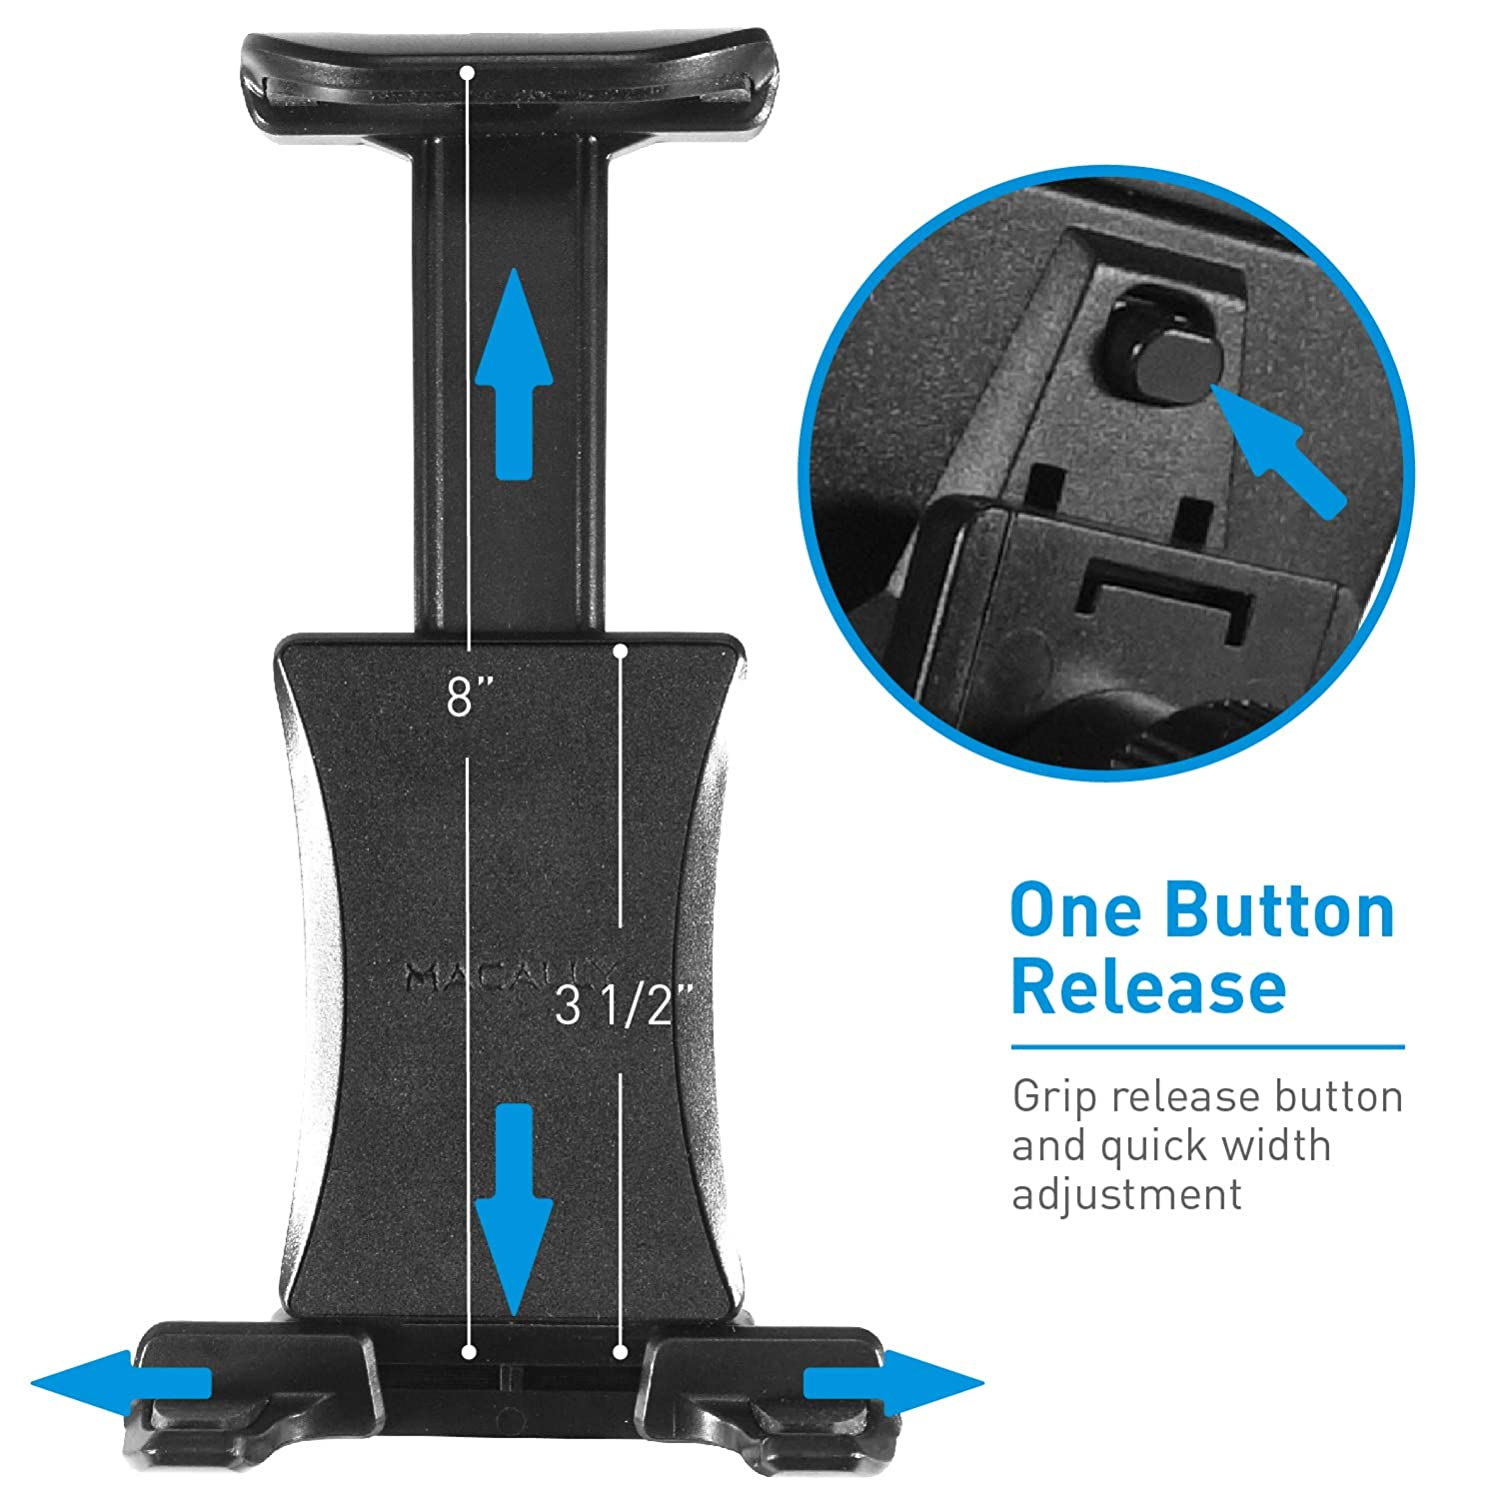 S8 S7 Note /& Most Cell Phones Macally Universal Magnetic Car Cup Holder Mount for iPhone Xs XS Max XR X 8 Plus 7 7 Plus 6s 6 6 Plus Samsung Galaxy S9 S9 MCUPMAG